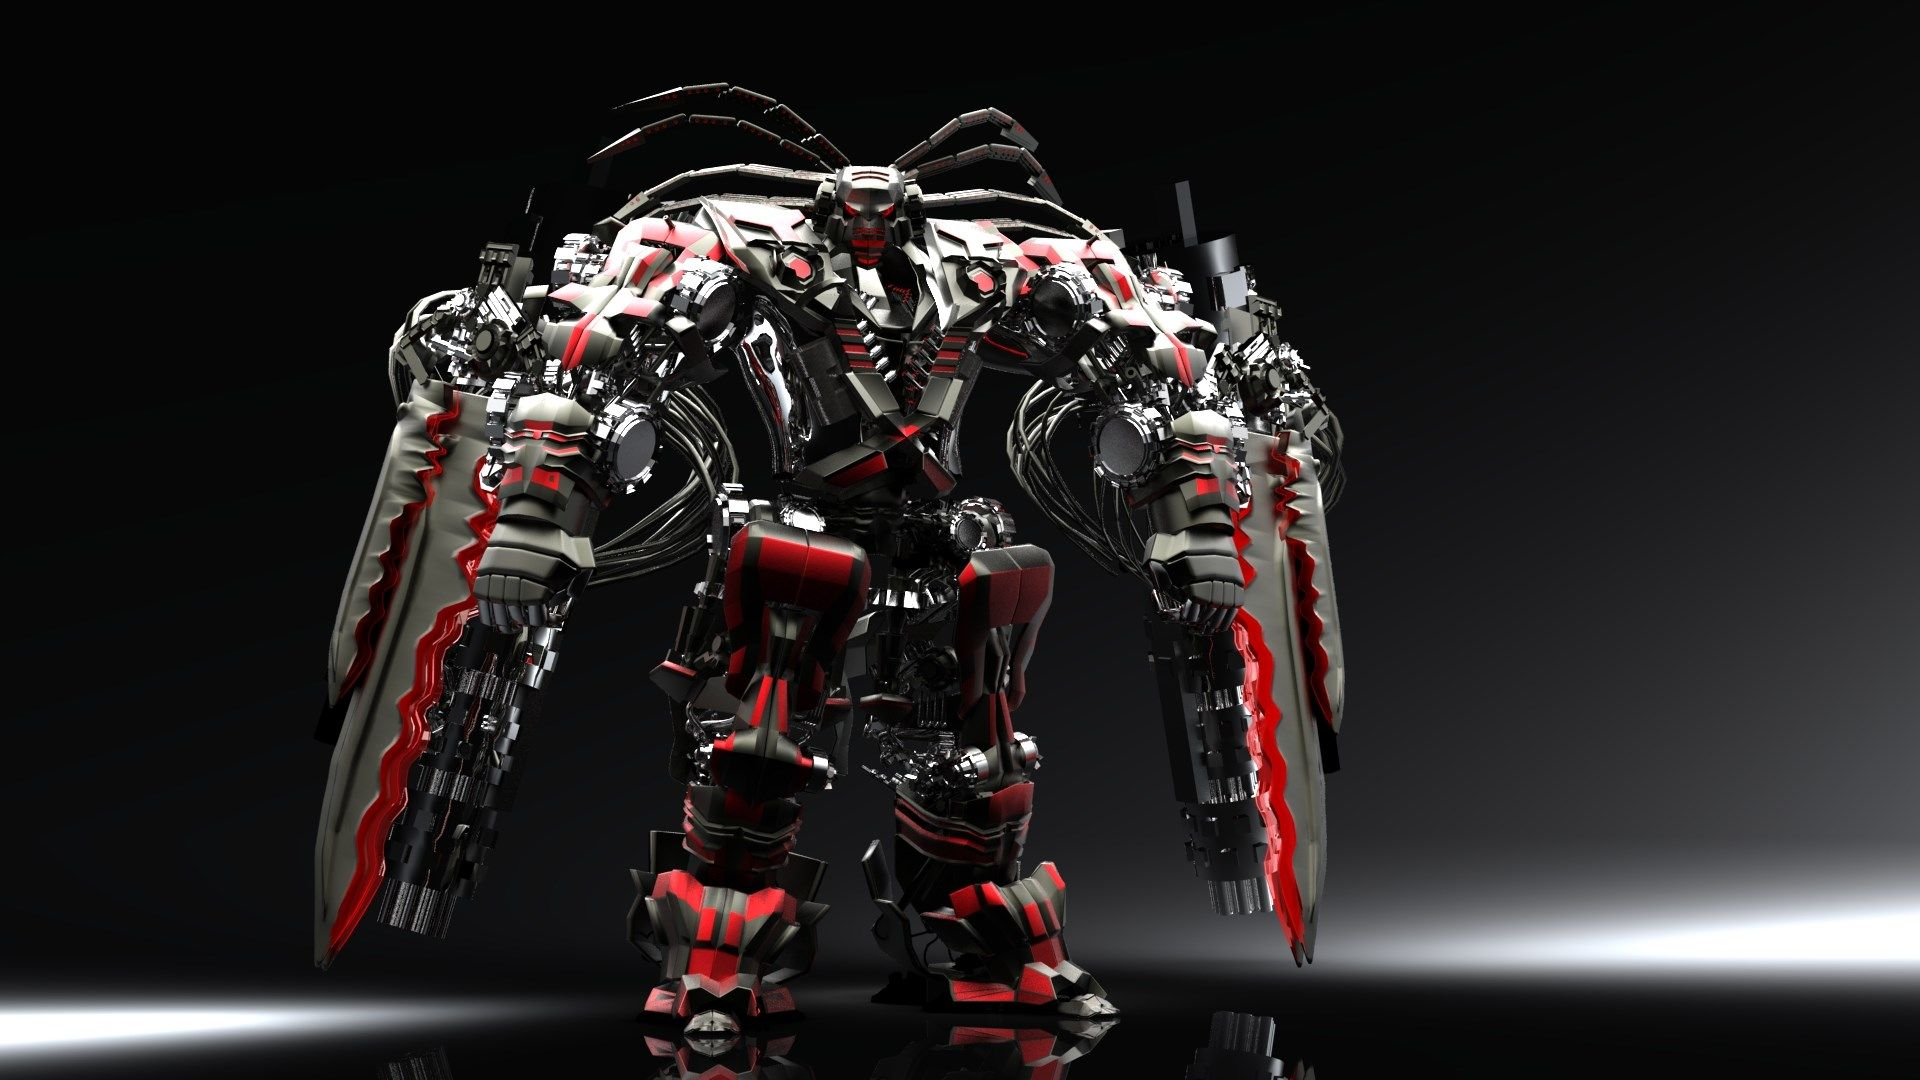 13951 Pictures For Desktop Robot Picture Robot Wallpaper Smartphone Wallpaper 3d Desktop Wallpaper